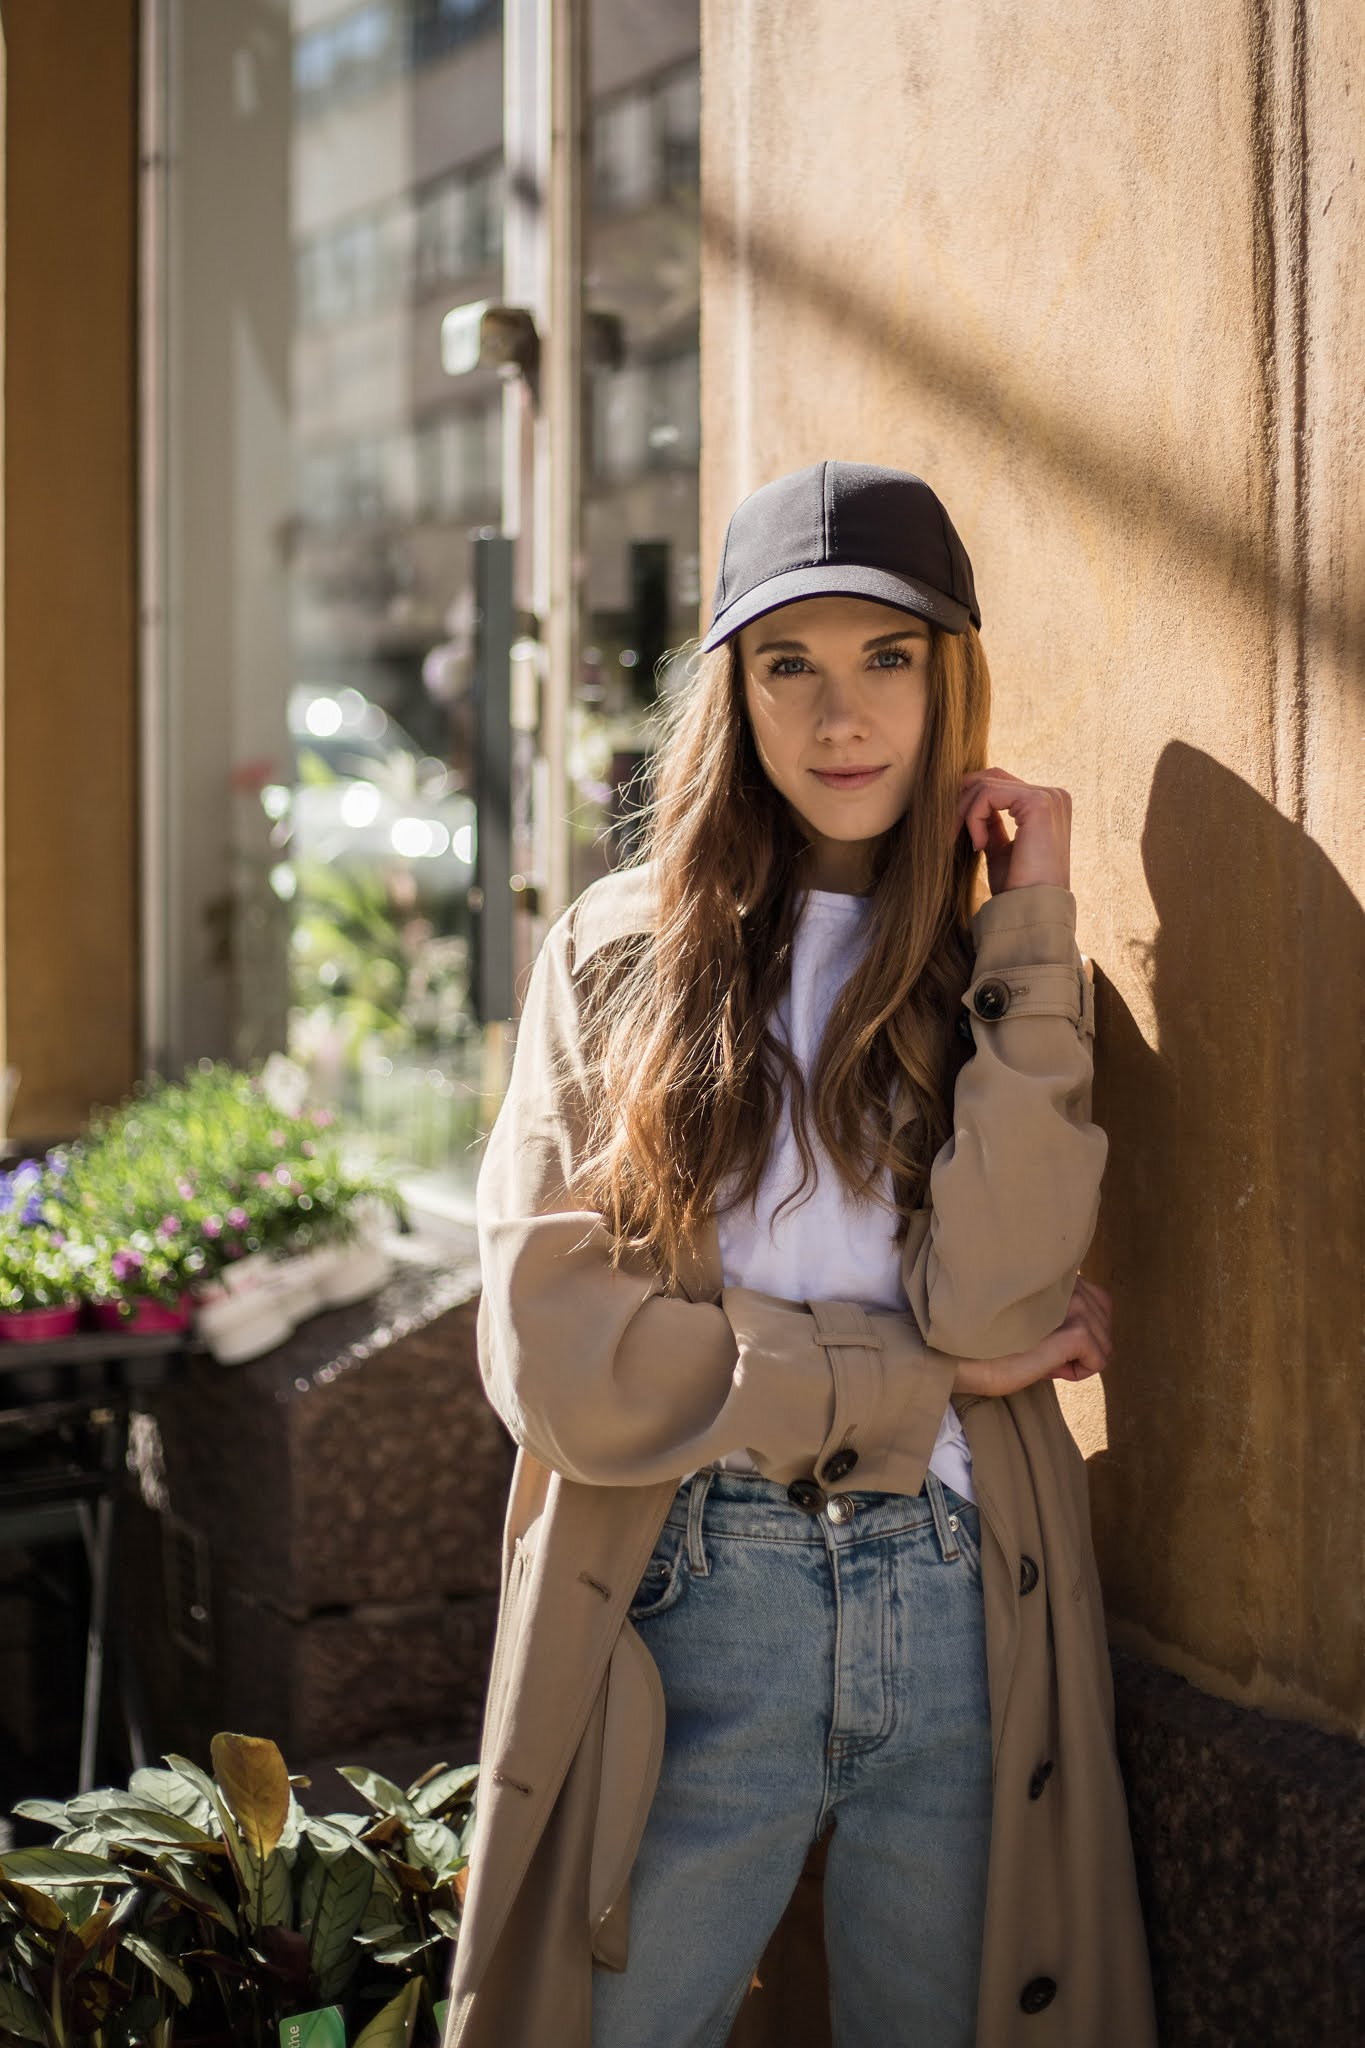 Kevätasu lippiksen ja trenssitakin kanssa // Spring outfit with a cap and a trench coat